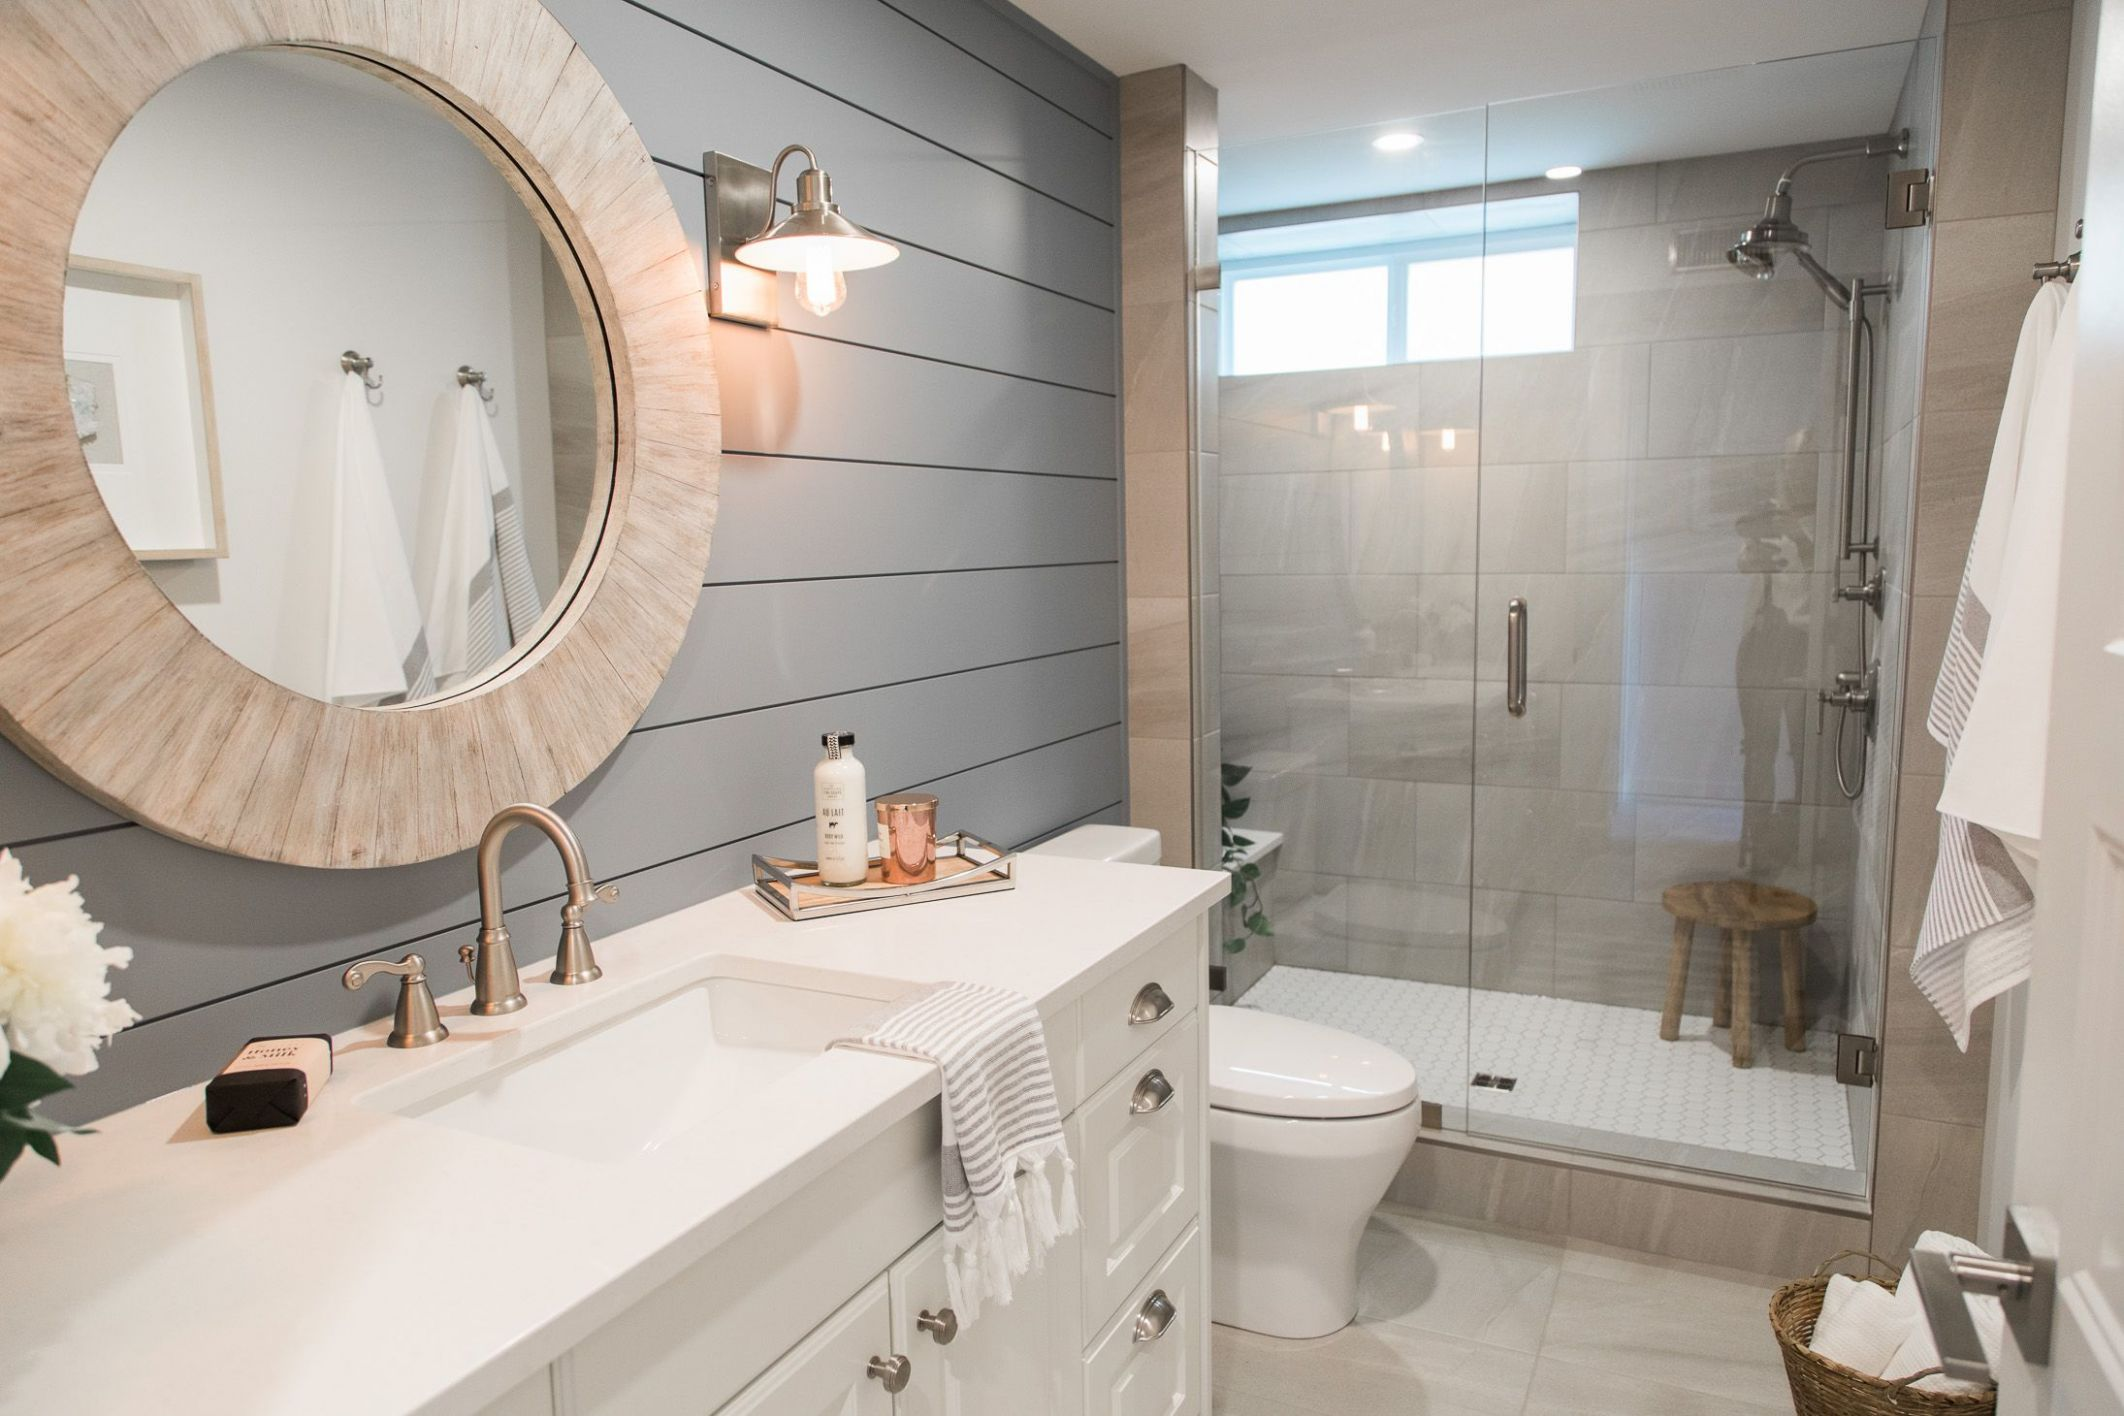 Love It Or List It Vancouver: Angie & Shawn | Modern bathroom ...